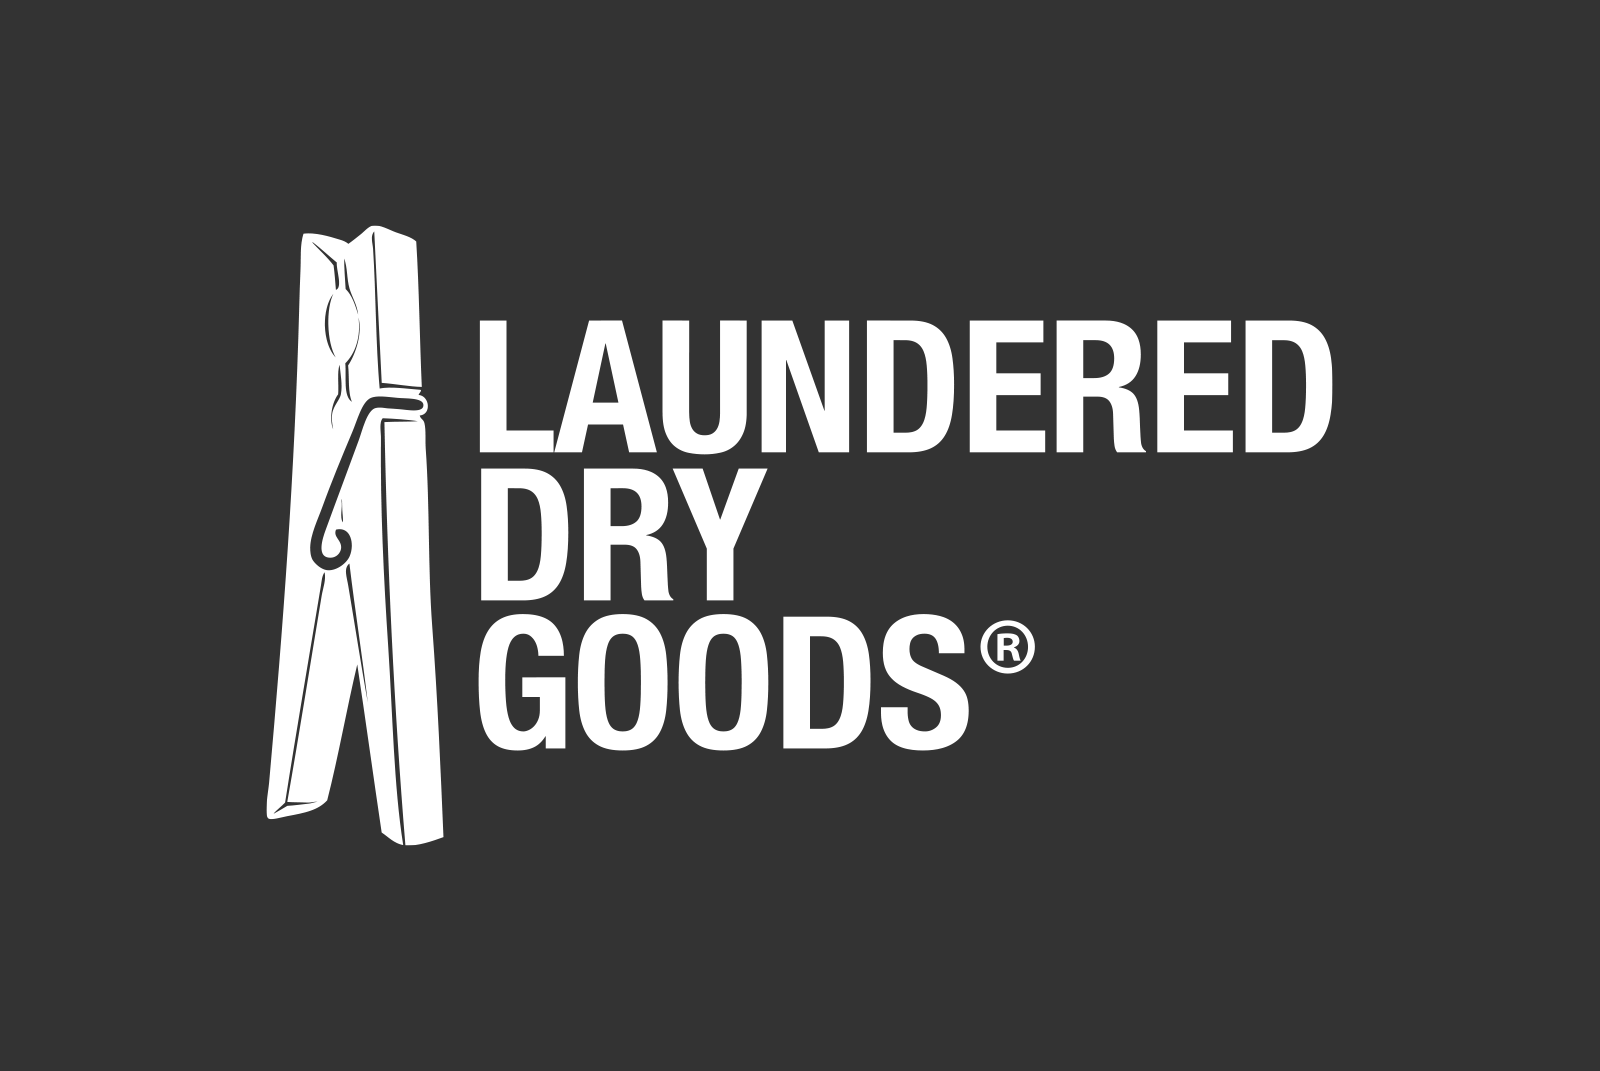 Laundered Dry Goods